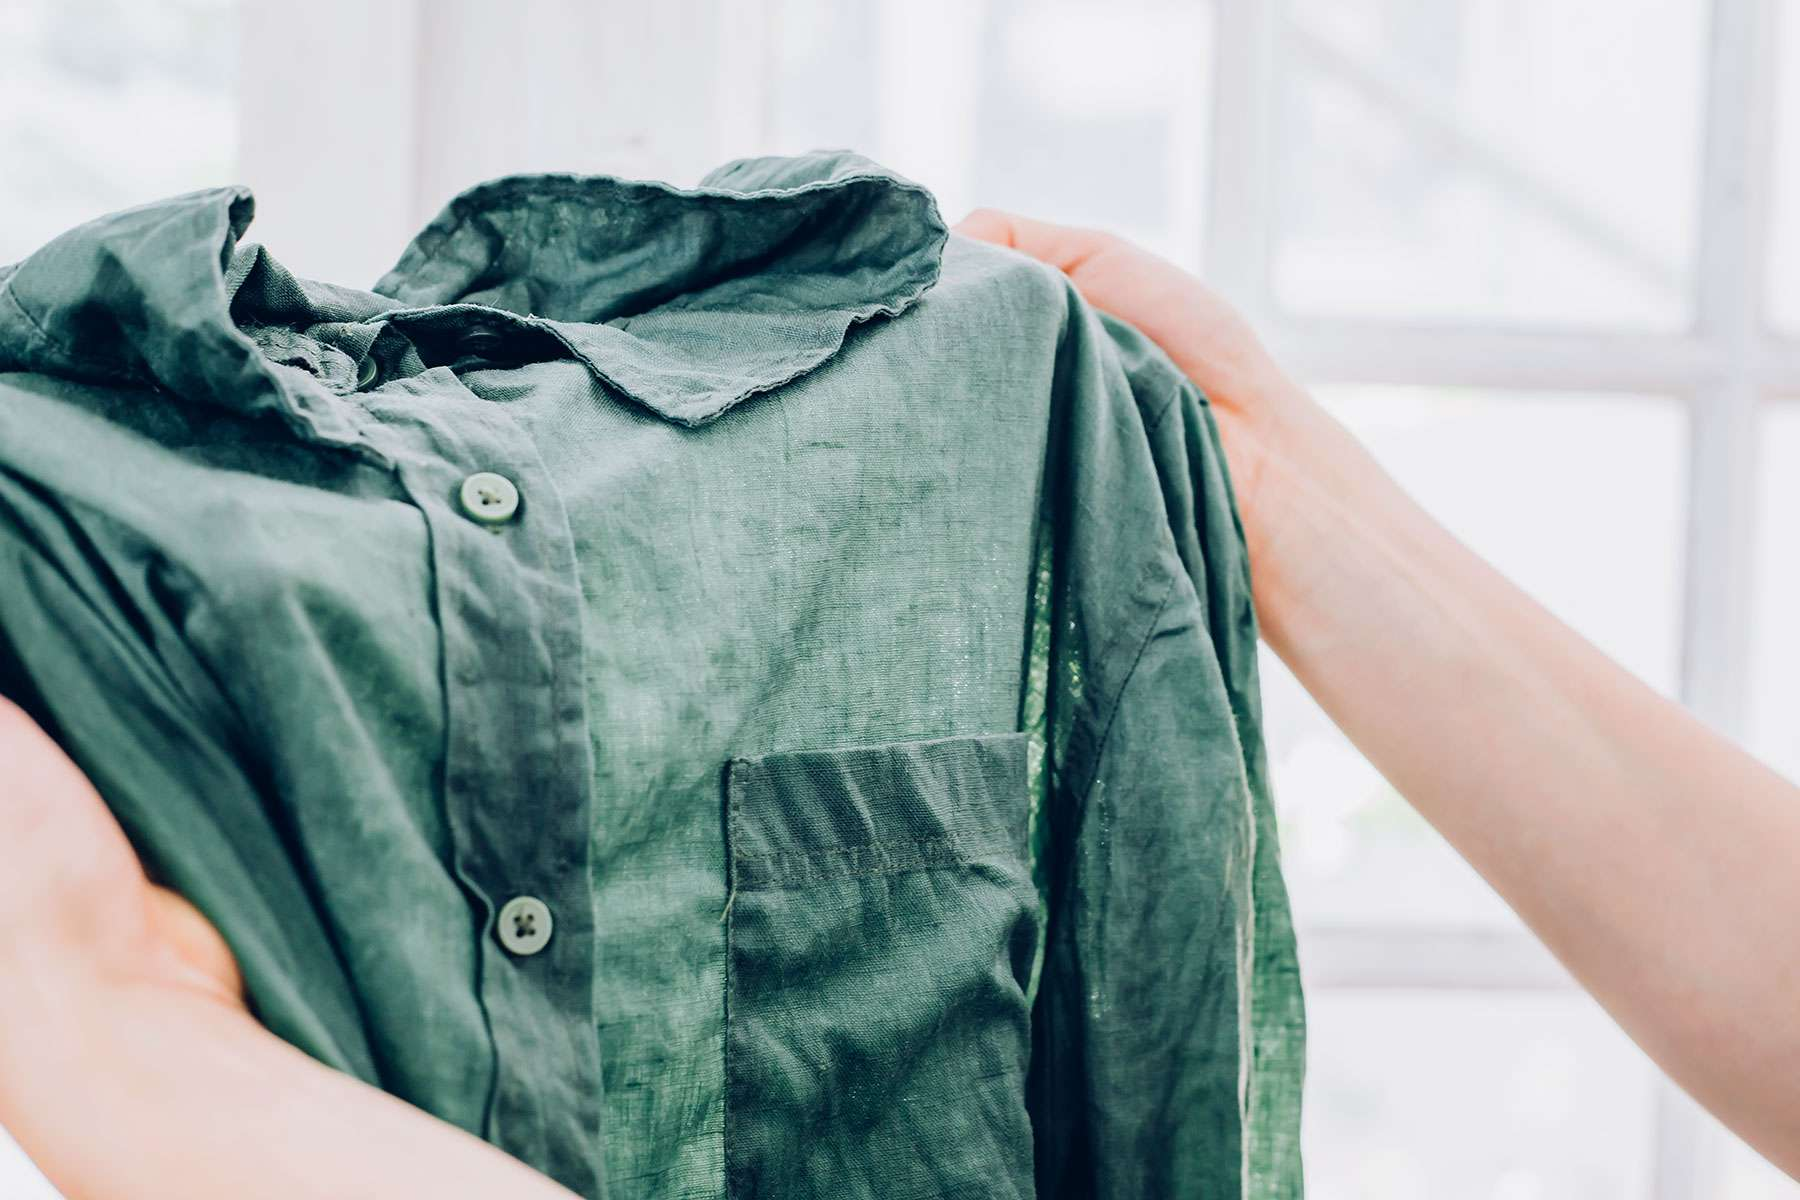 Green collared shirt checked for stains after soaking